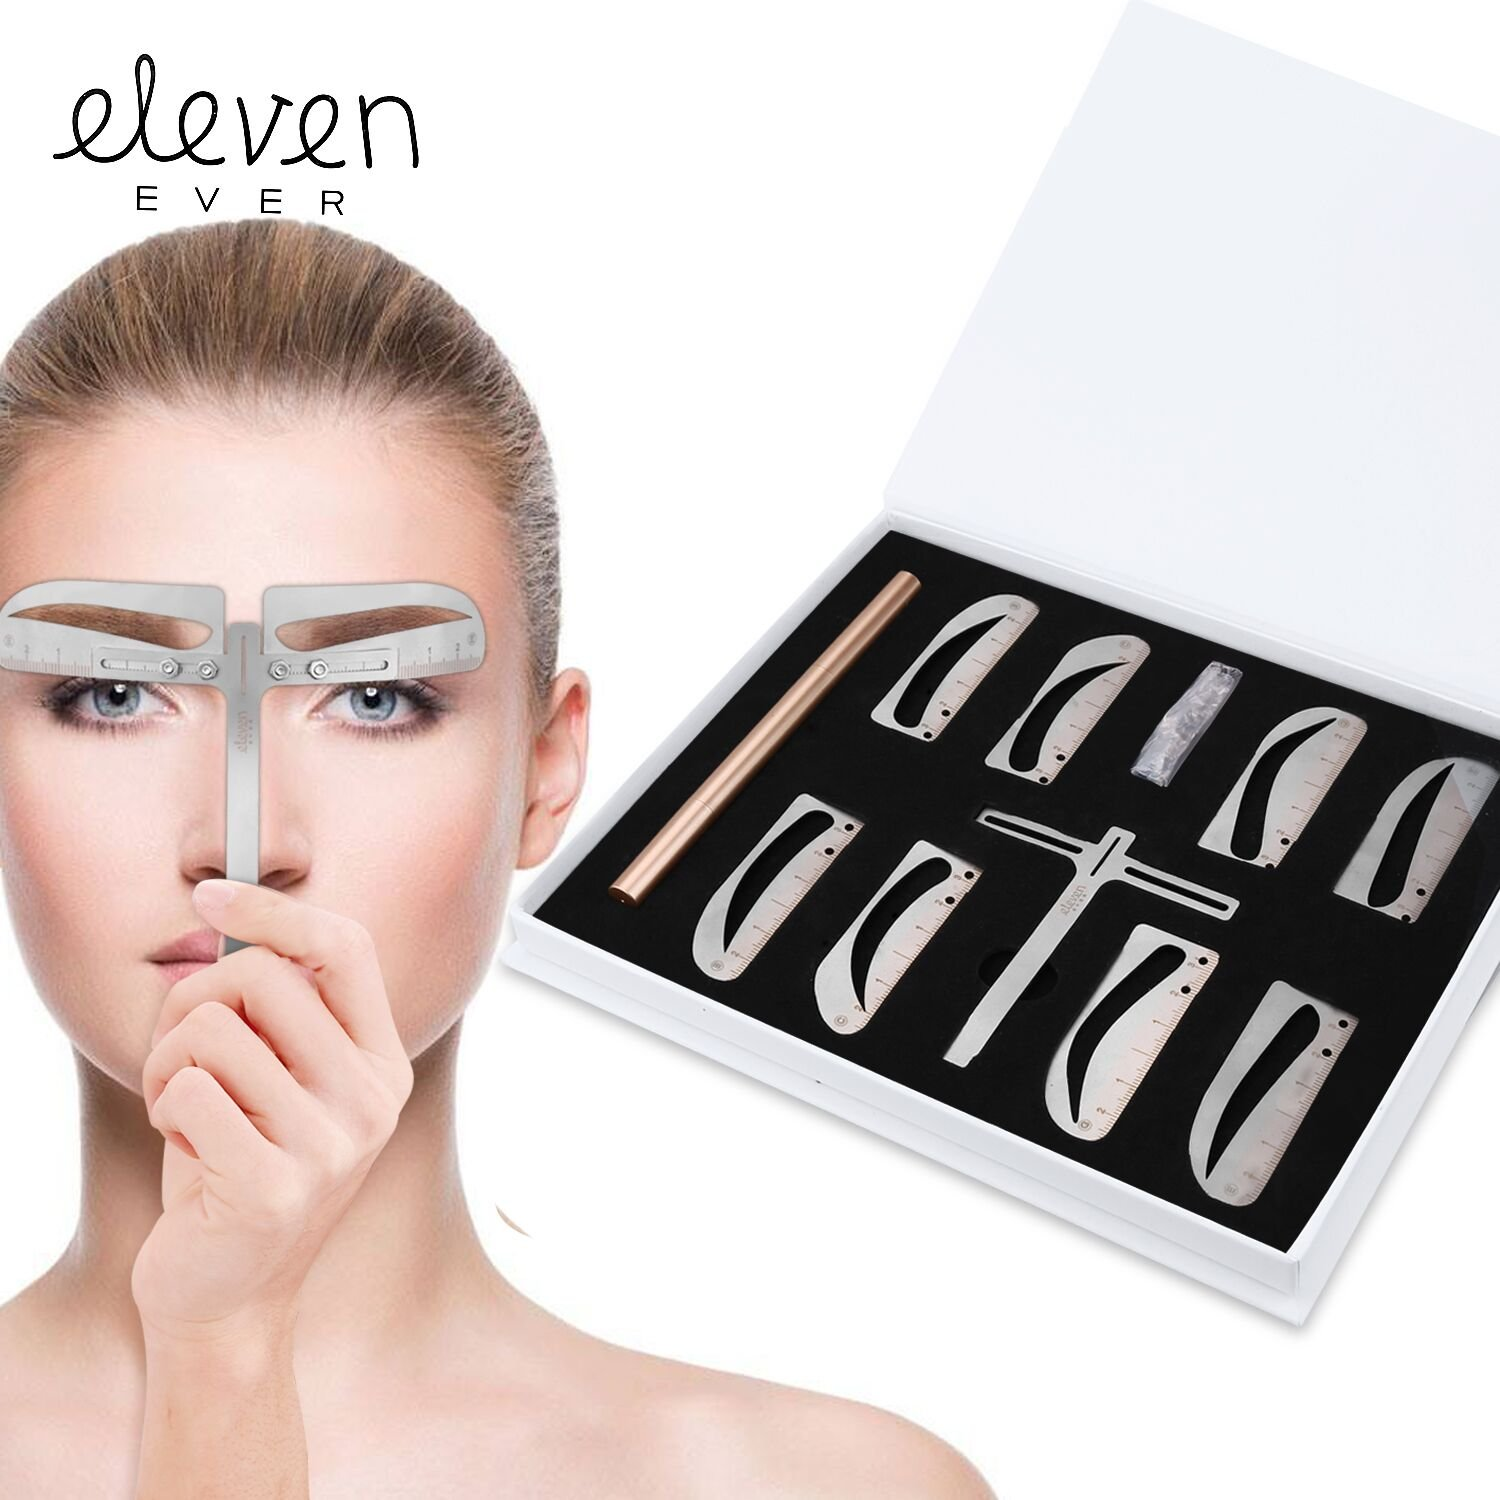 Amazon Eleven Ever Eyebrow Stencil Ruler Kit Includes 4 Group